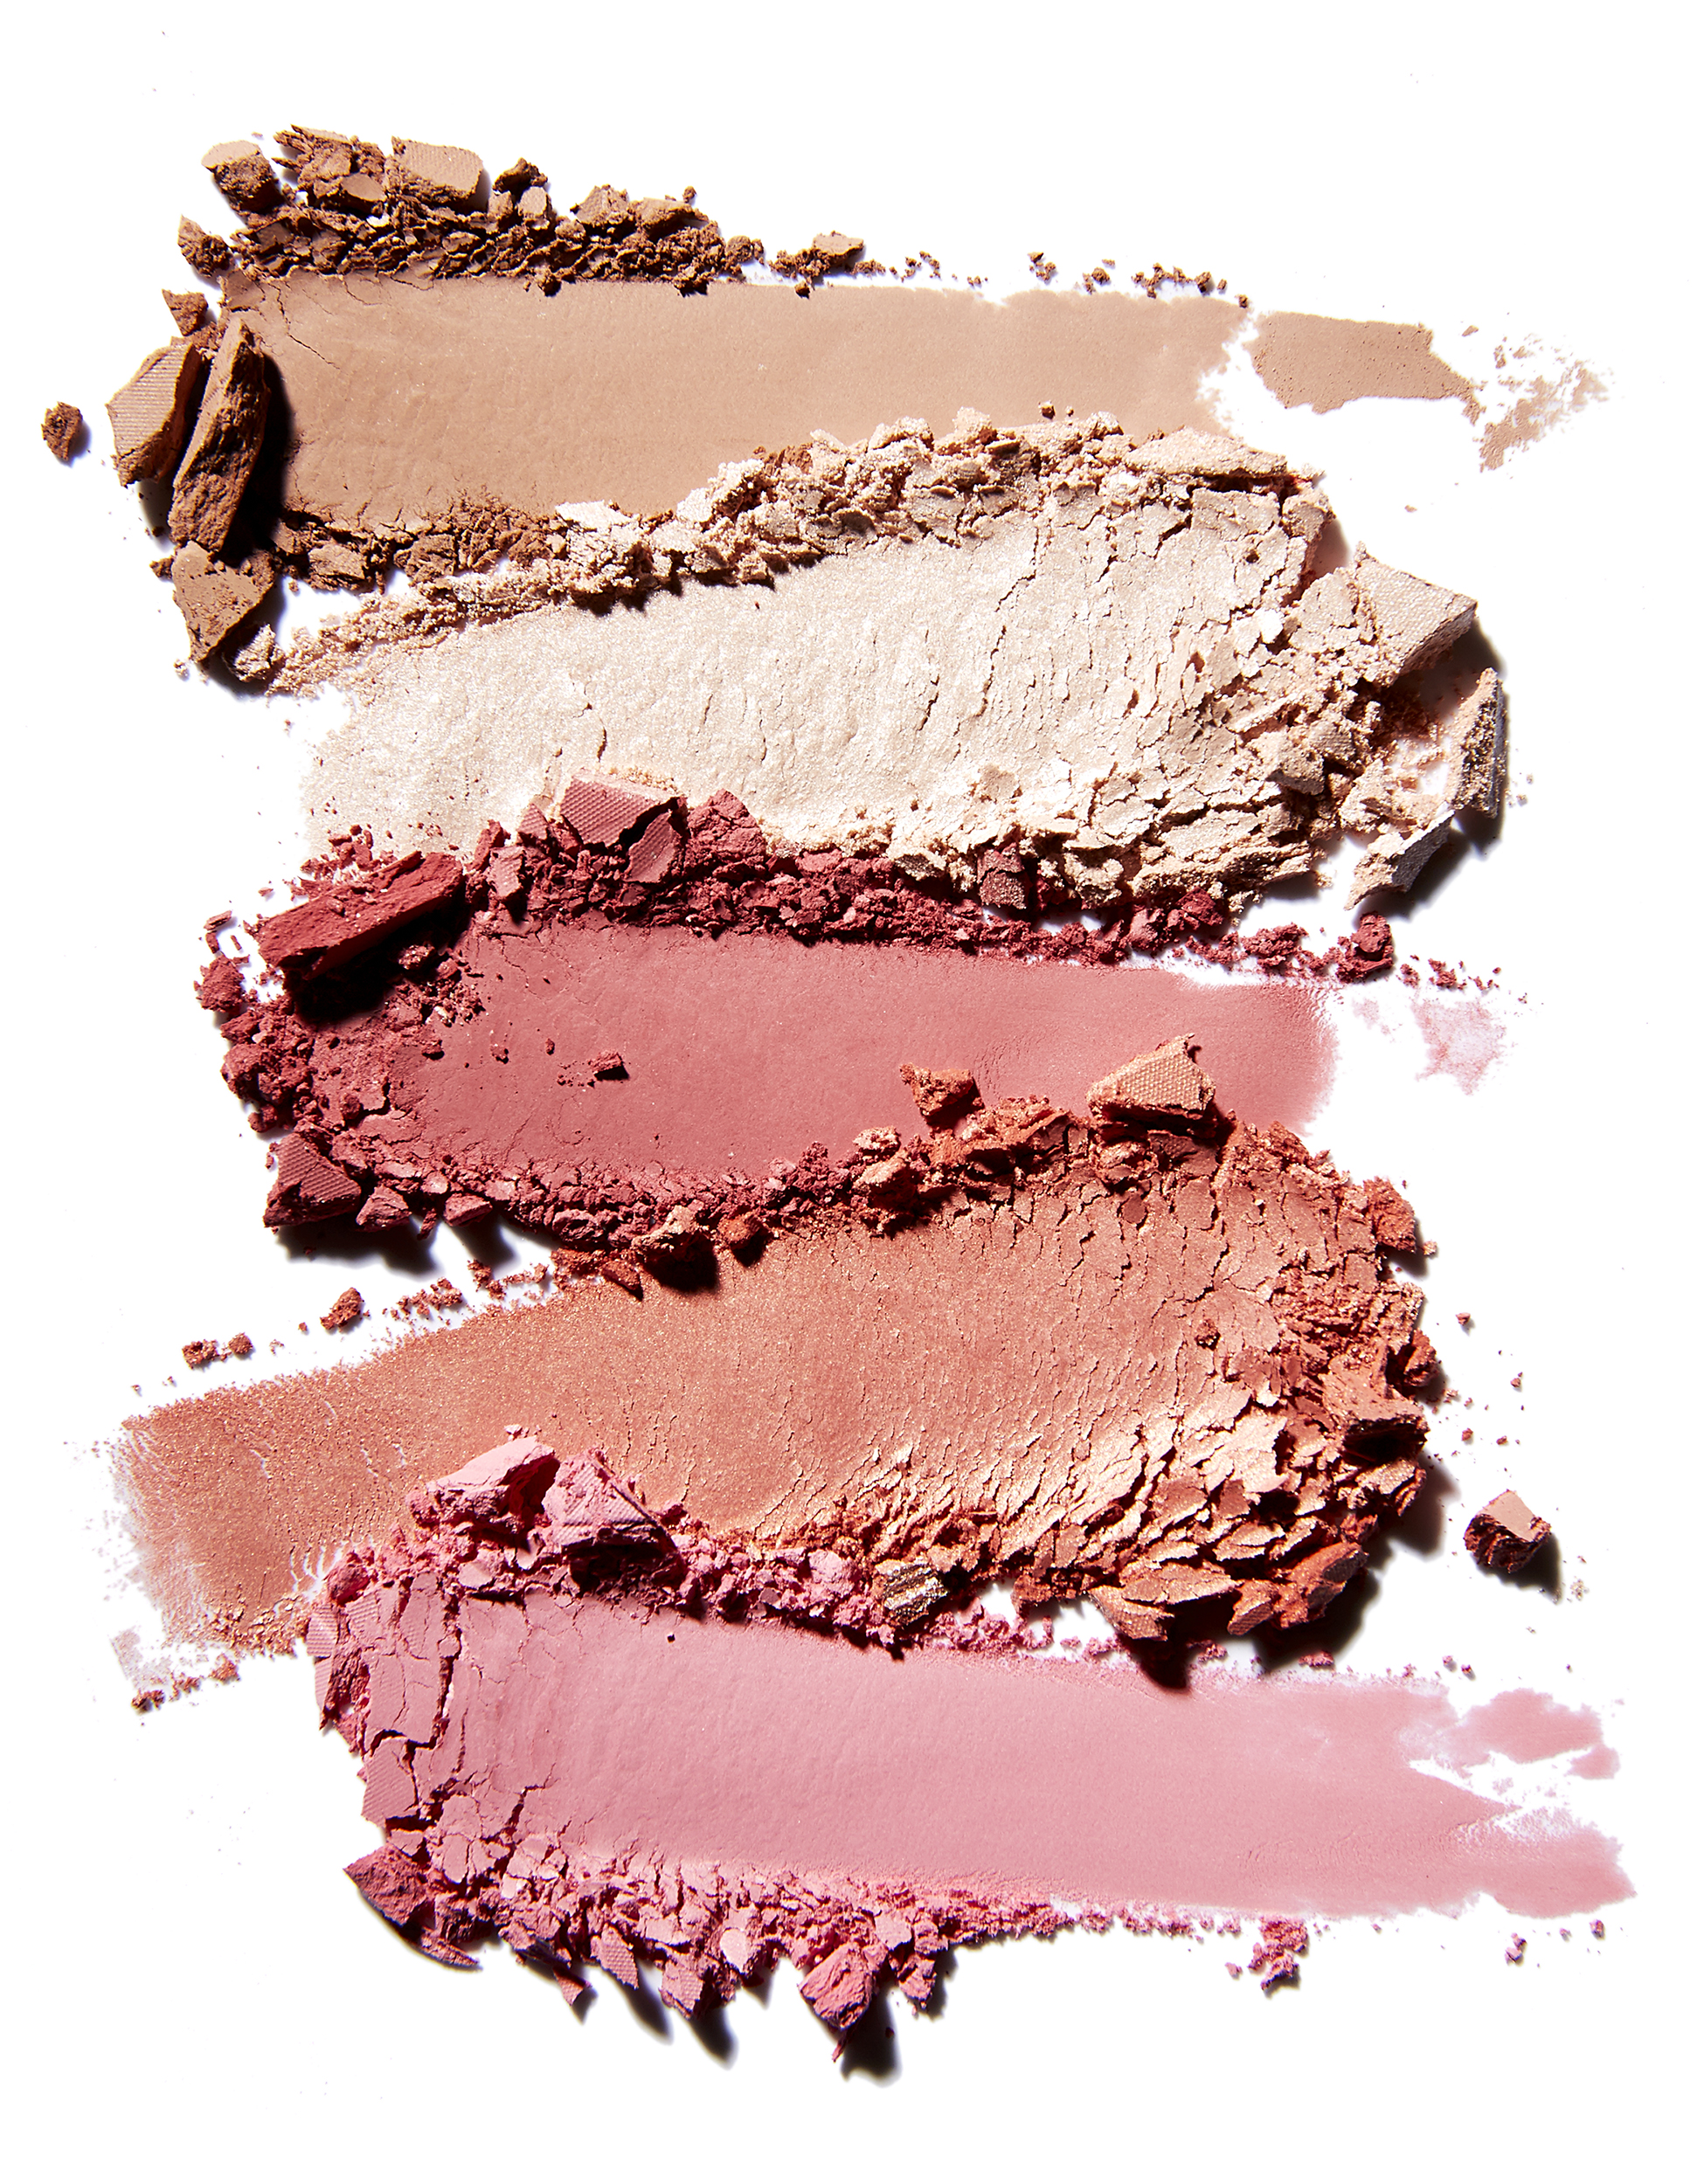 Cosmetics-Powders.jpg